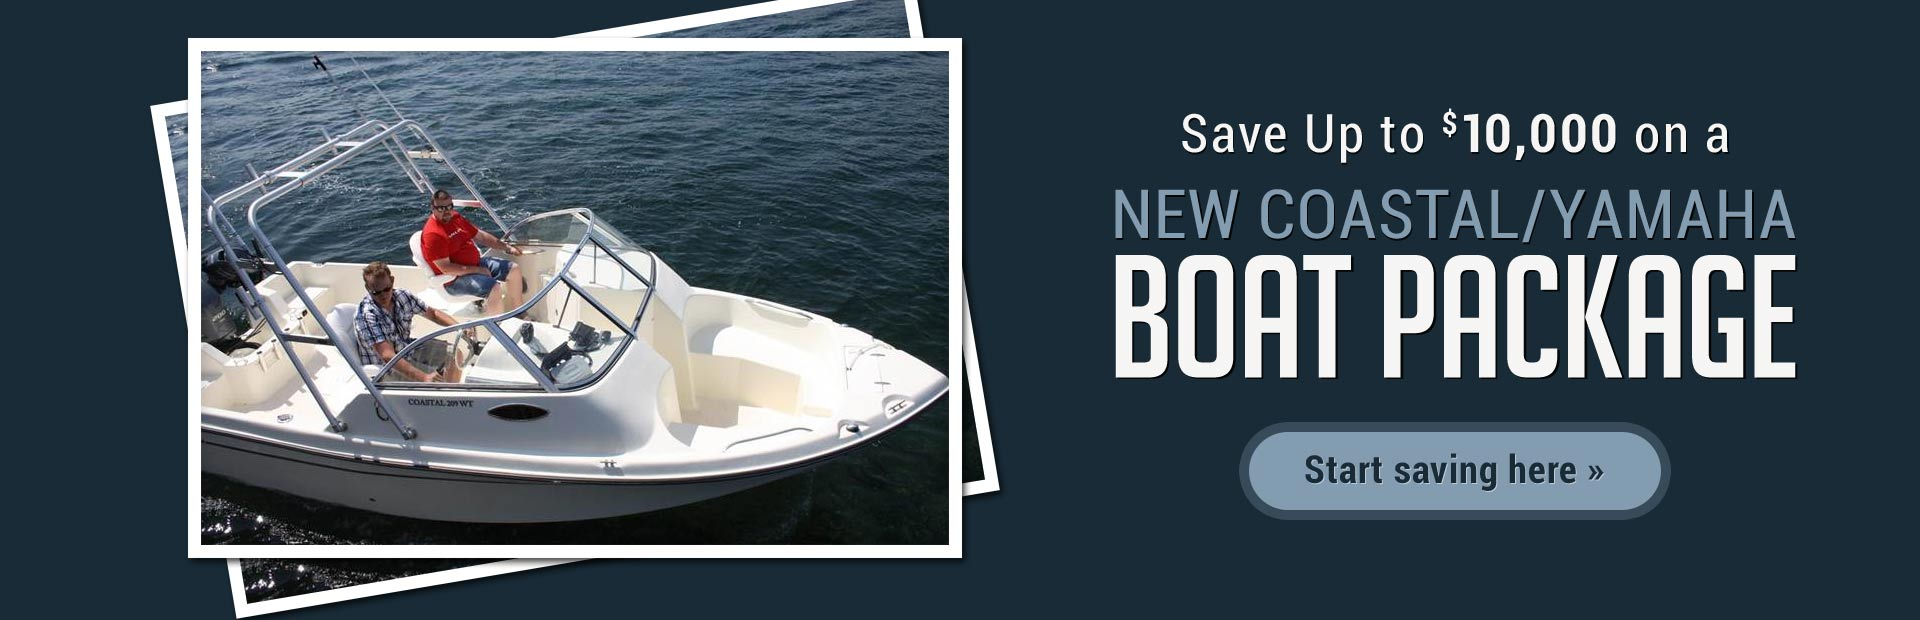 Save Up to $10,000 on a New Coastal/Yamaha Boat Package: Click here for details.